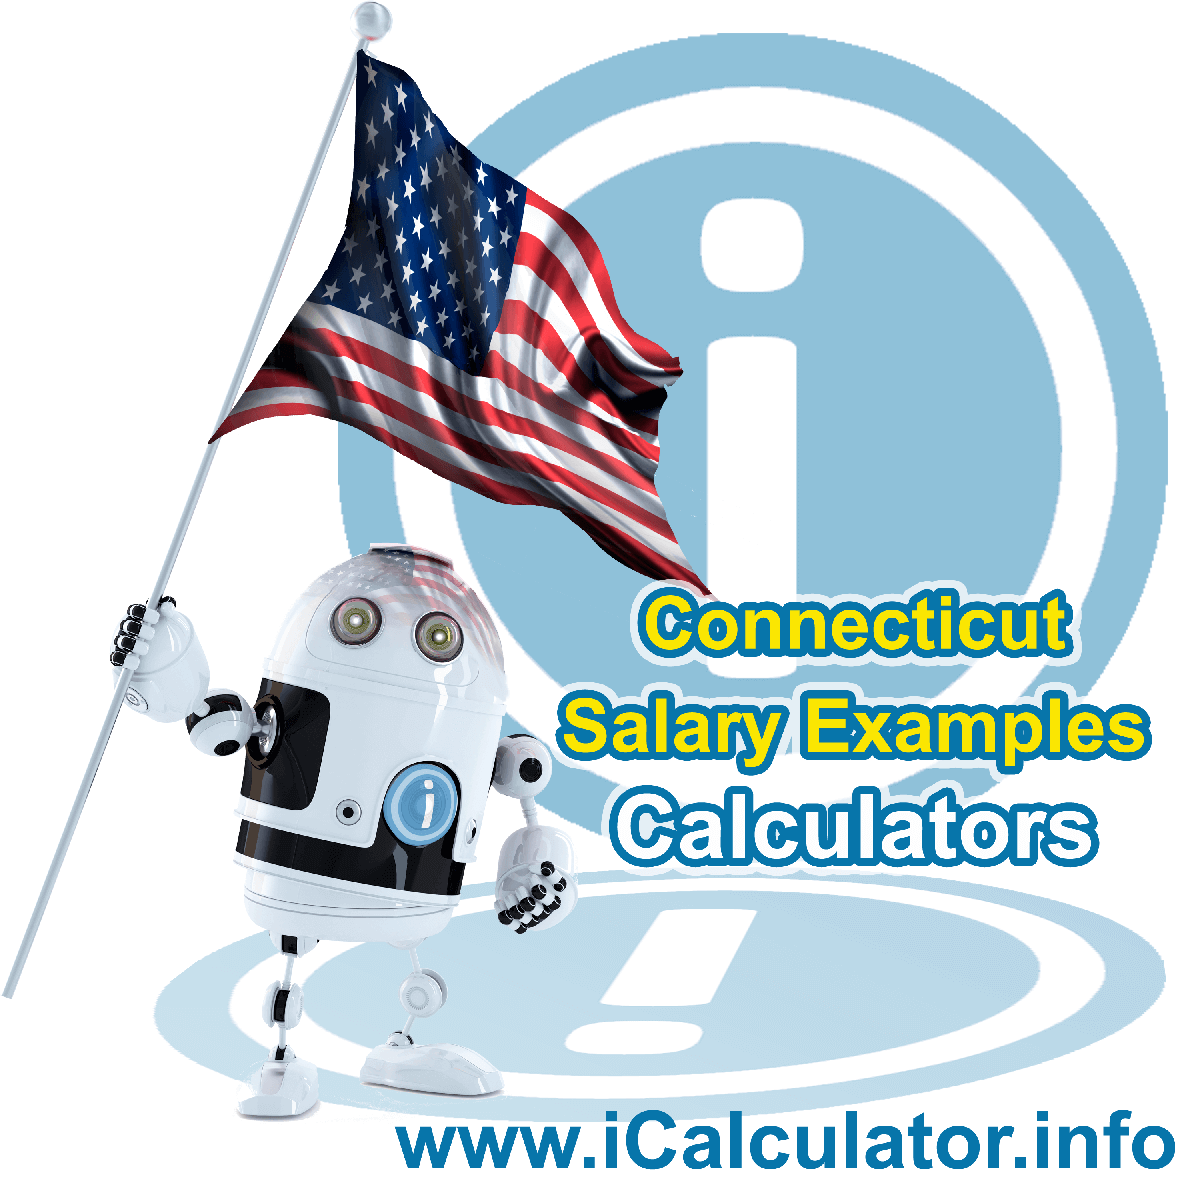 Connecticut Salary Example for $140,000.00 in 2021 | iCalculator™ | $140,000.00 salary example for employee and employer paying Connecticut State tincome taxes. Detailed salary after tax calculation including Connecticut State Tax, Federal State Tax, Medicare Deductions, Social Security, Capital Gains and other income tax and salary deductions complete with supporting Connecticut state tax tables